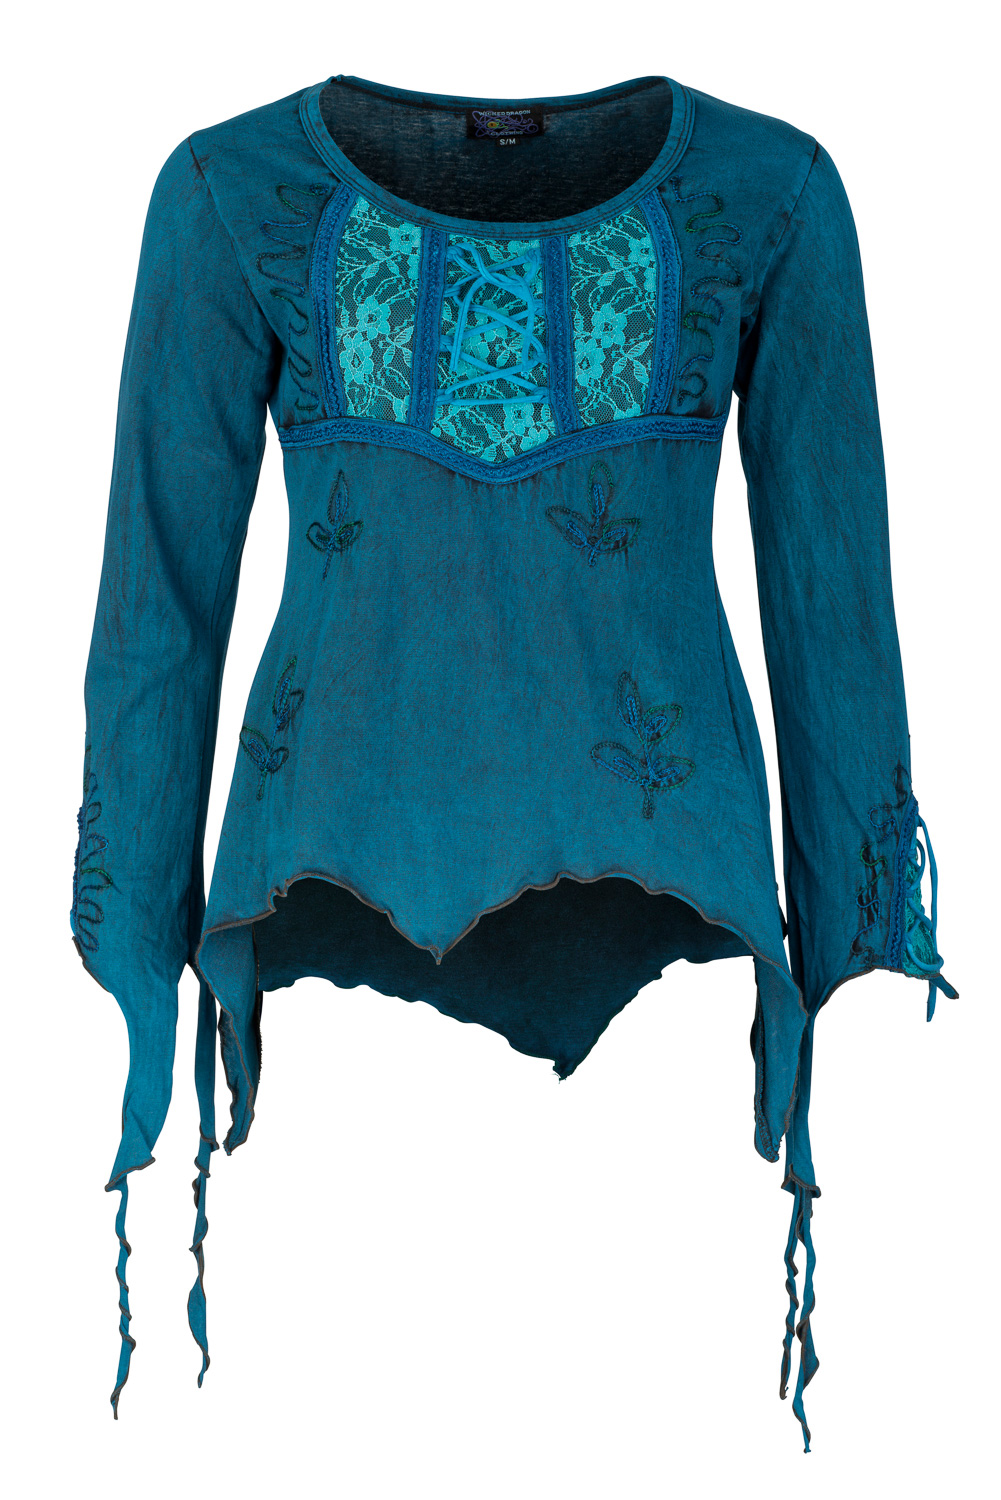 Pixie top with lace and embroidery